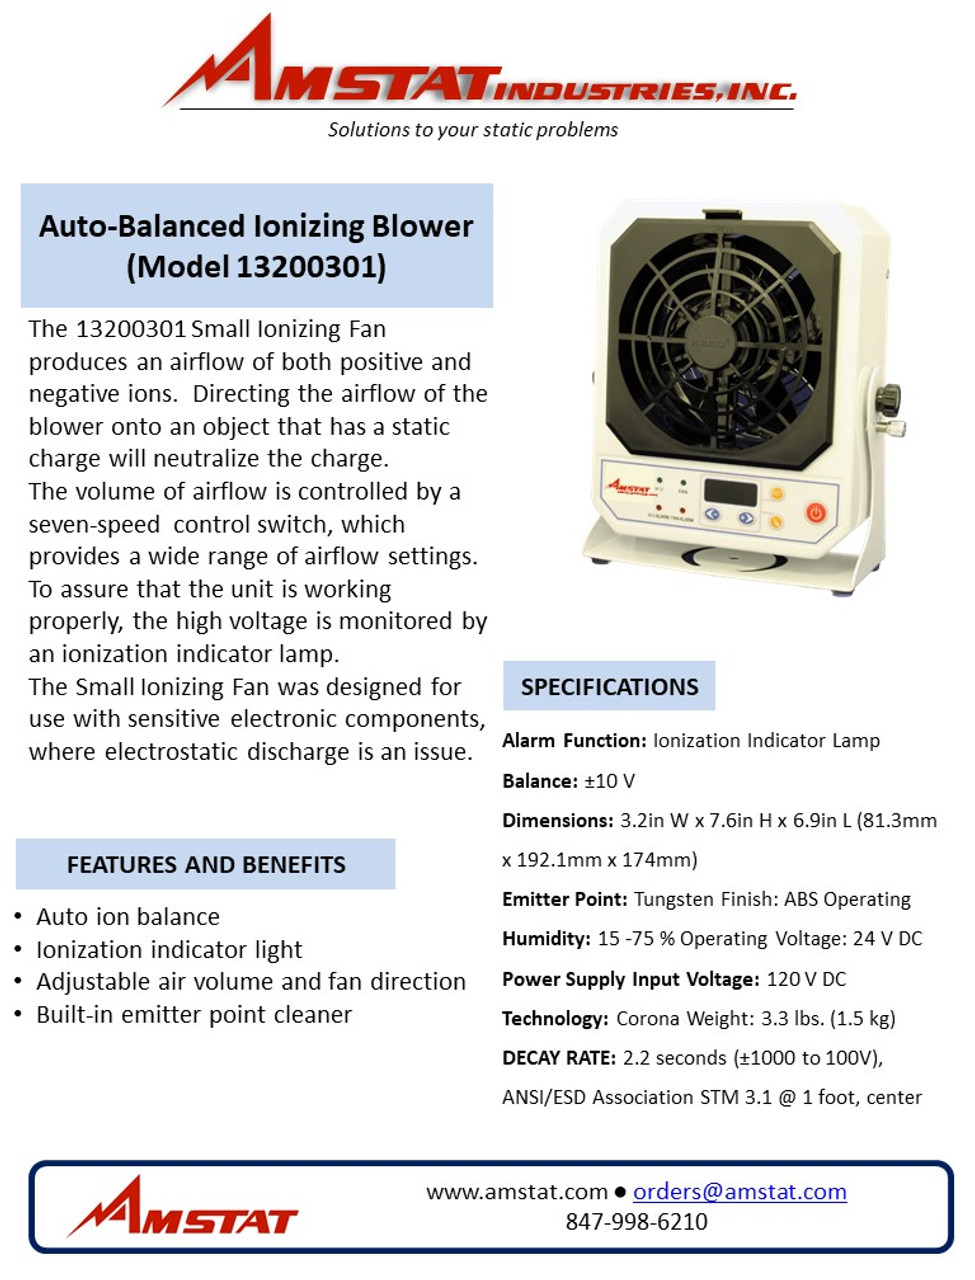 Auto-Balanced High Frequency Ionizing Blower